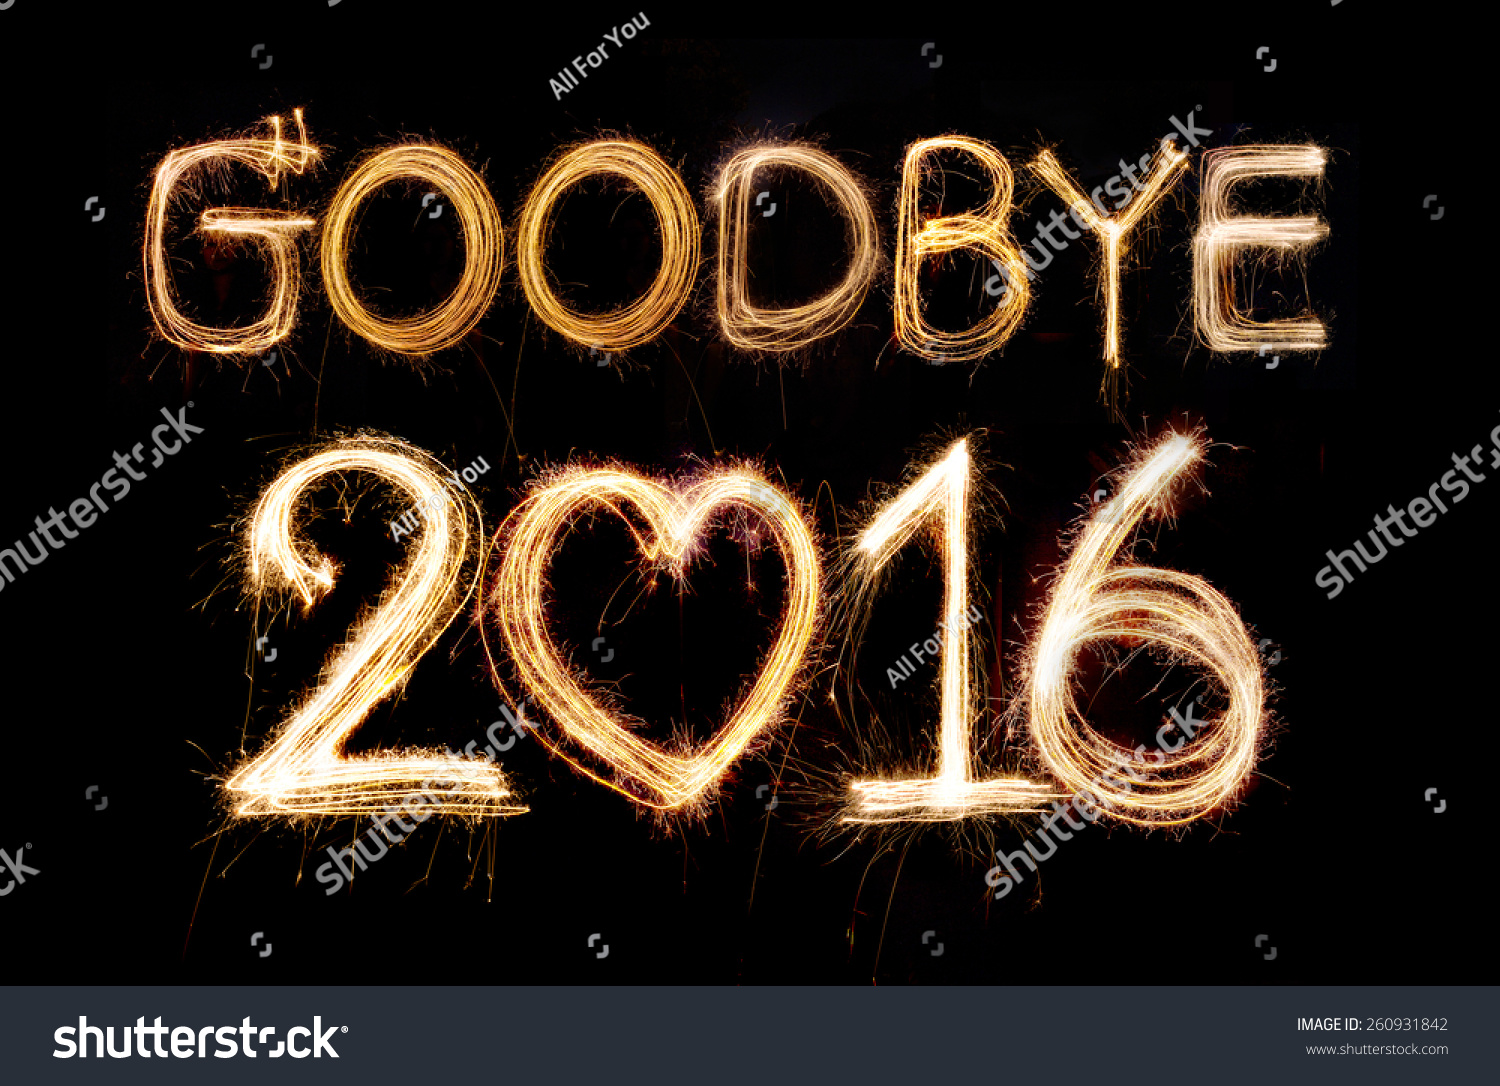 Image result for GOODBYE 2016